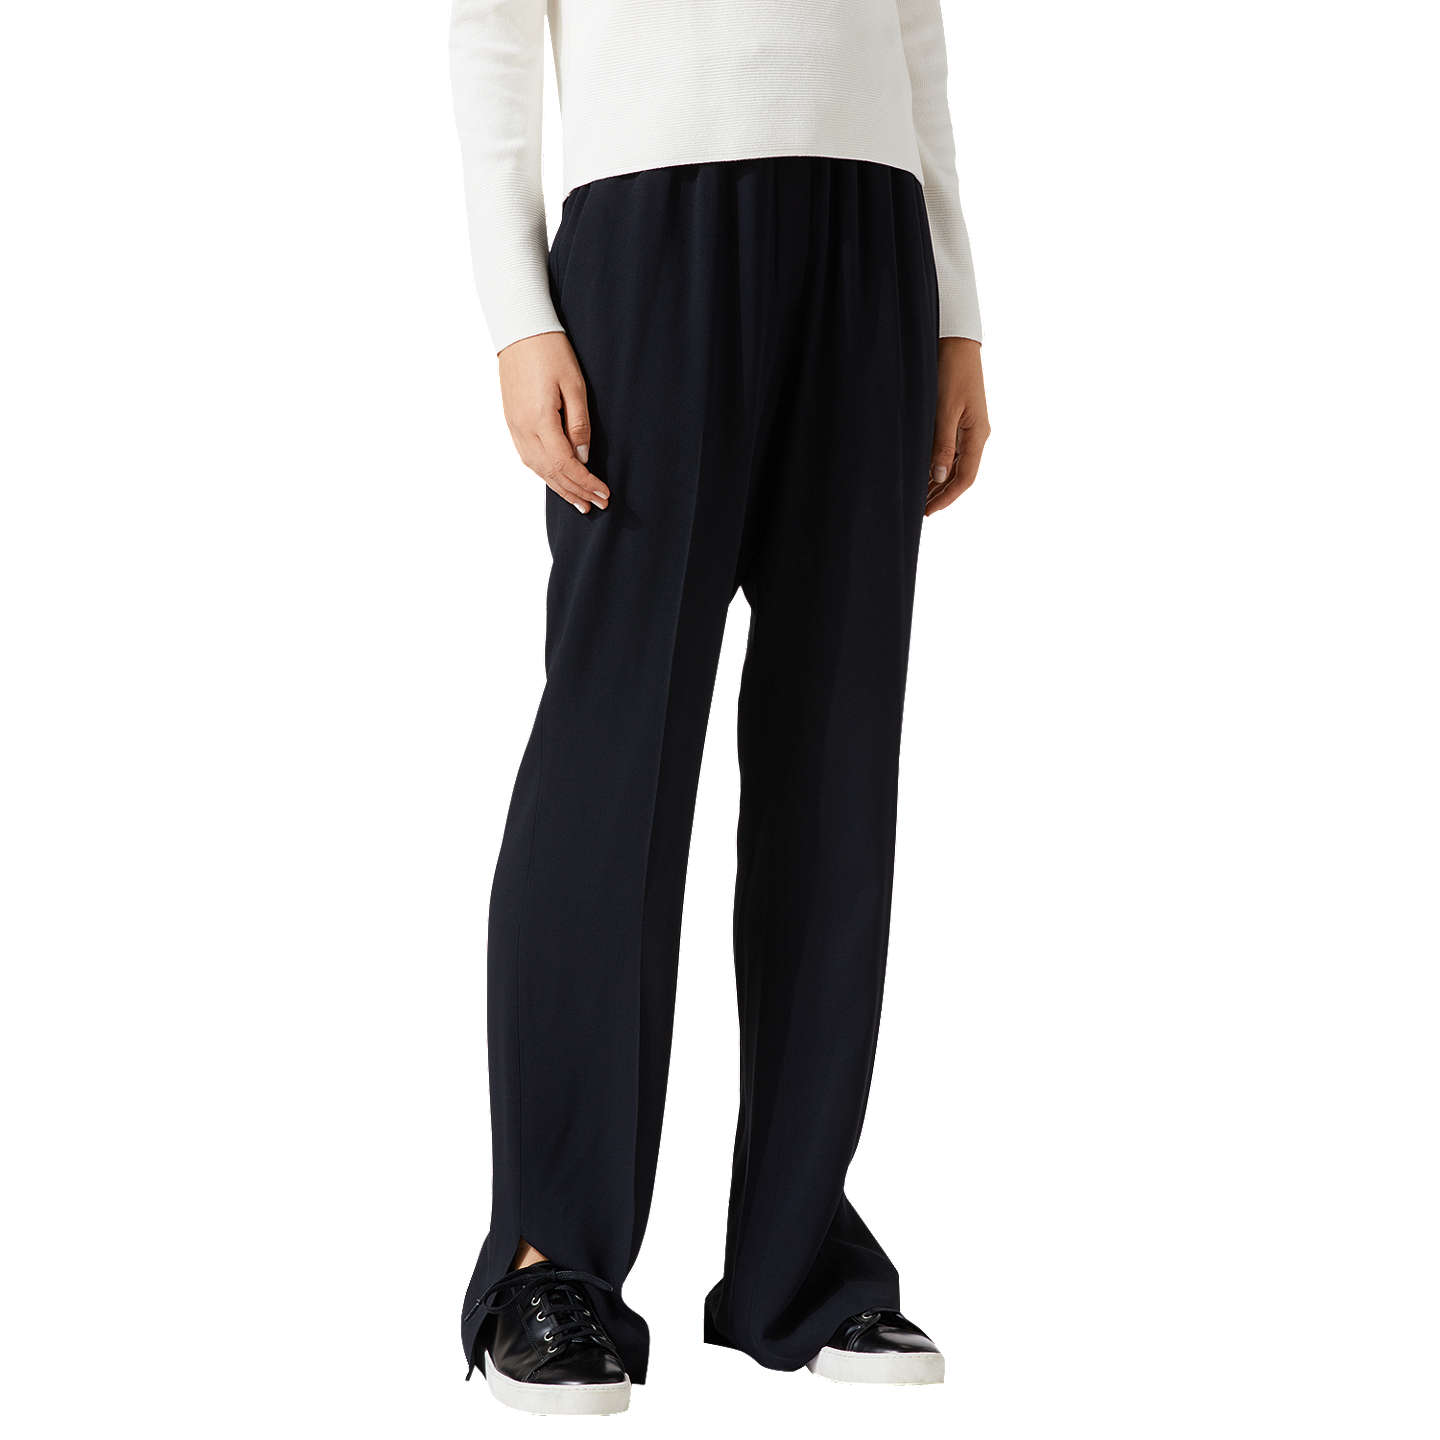 BuyJigsaw Crepe Relaxed Parallel Trousers, Black, 6 Online at johnlewis.com